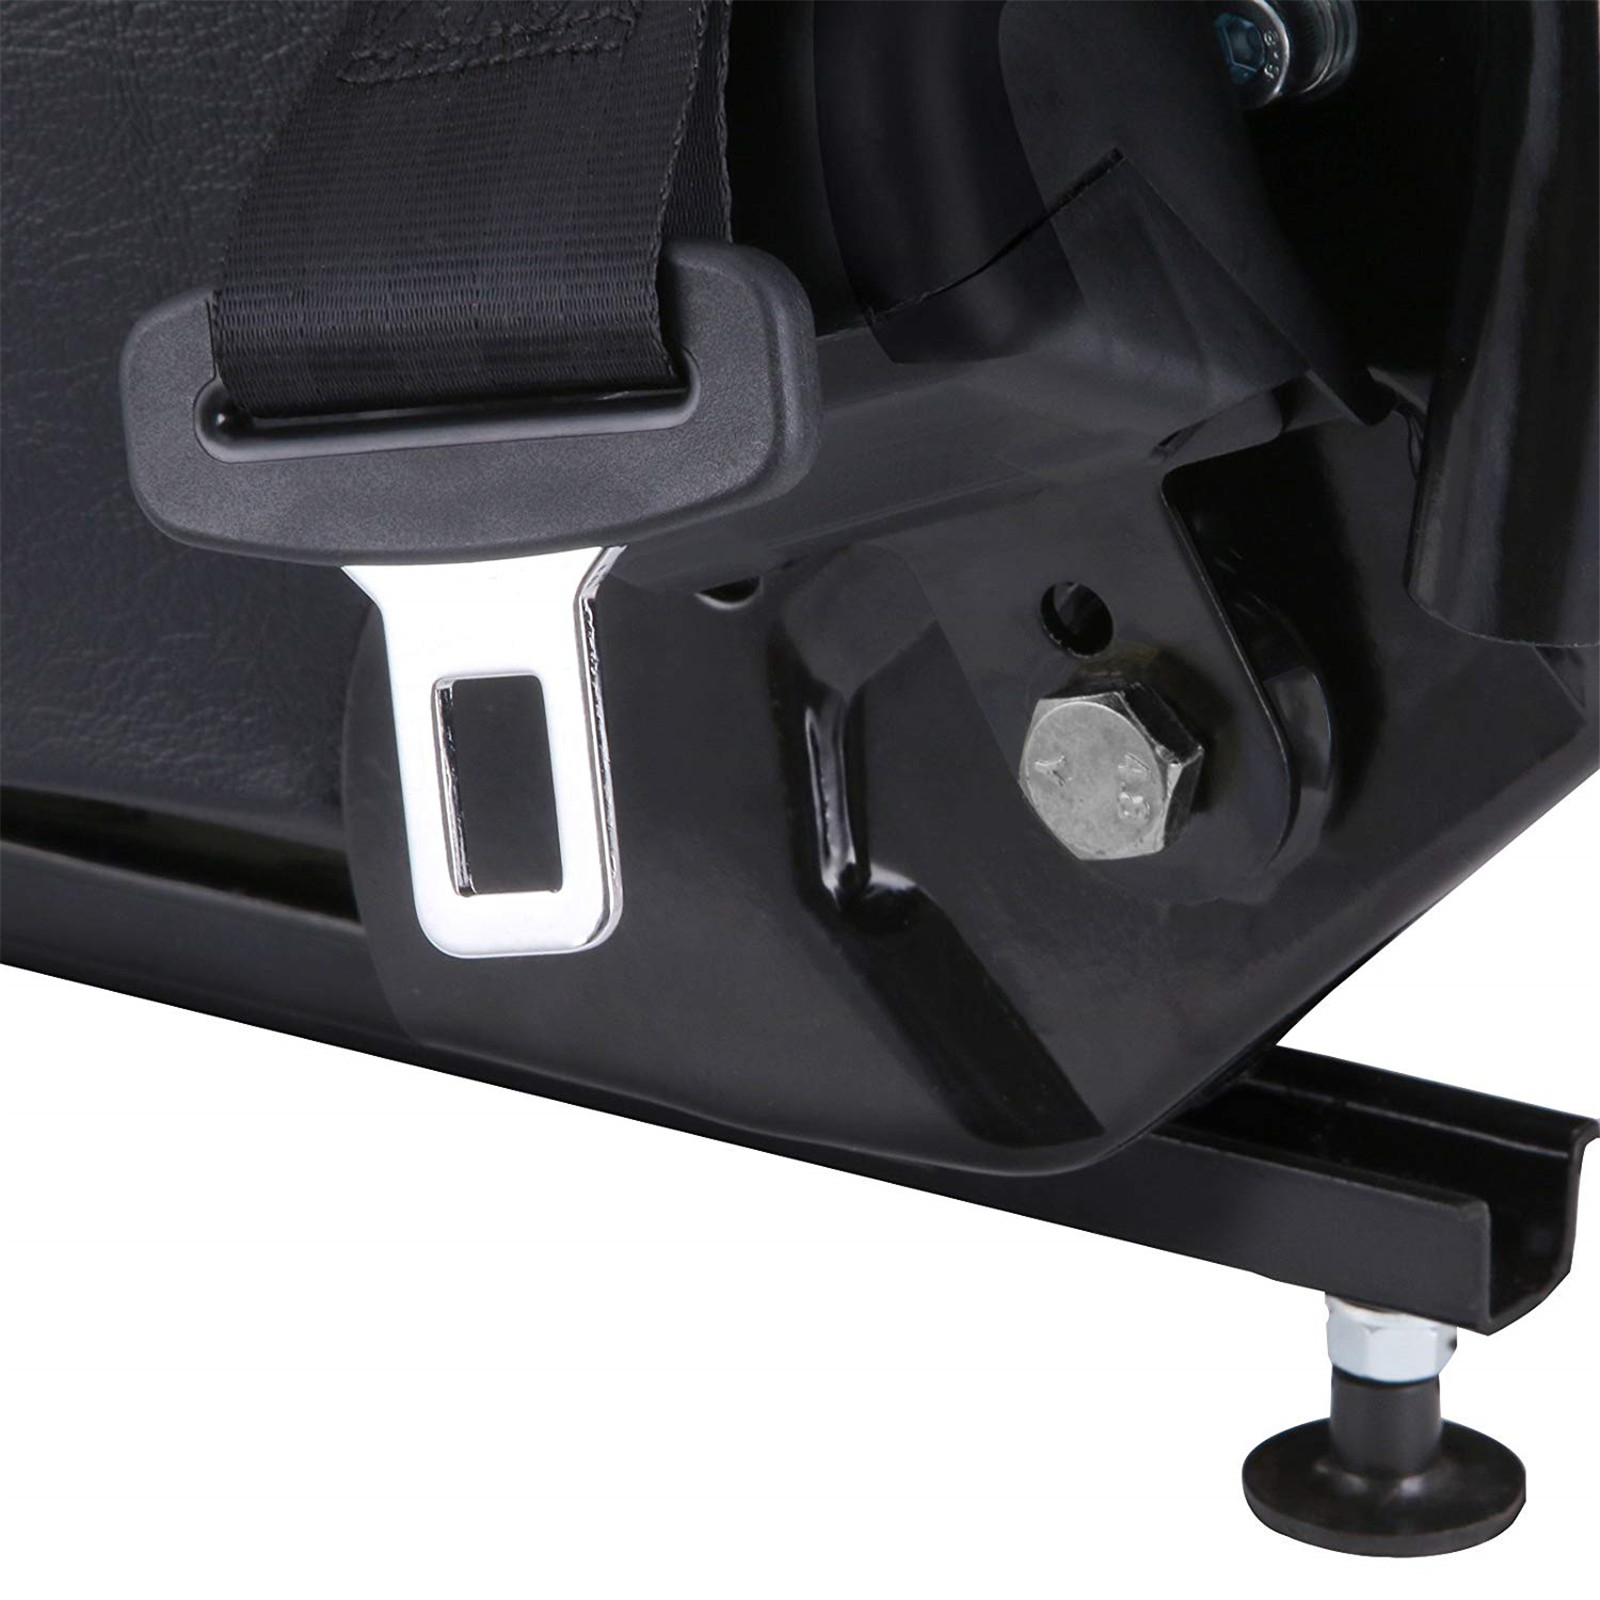 New Universal Folding Forklift Seat Premium Quality Fits Nissan Free shipping